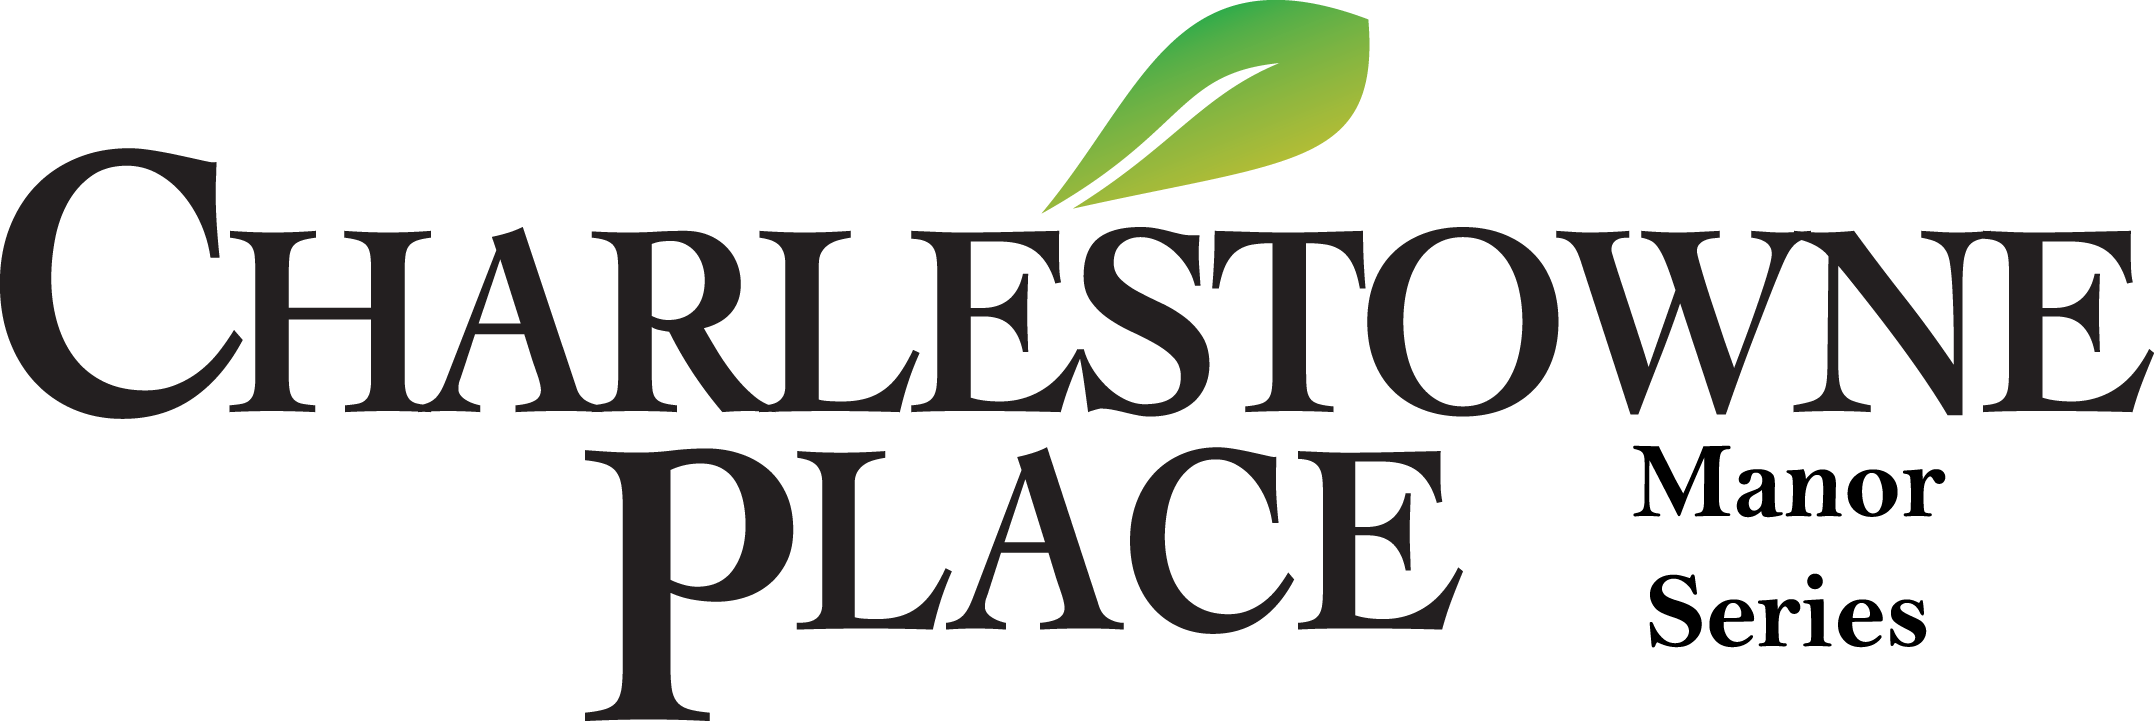 Charlestowne Place Manor Series logo.png